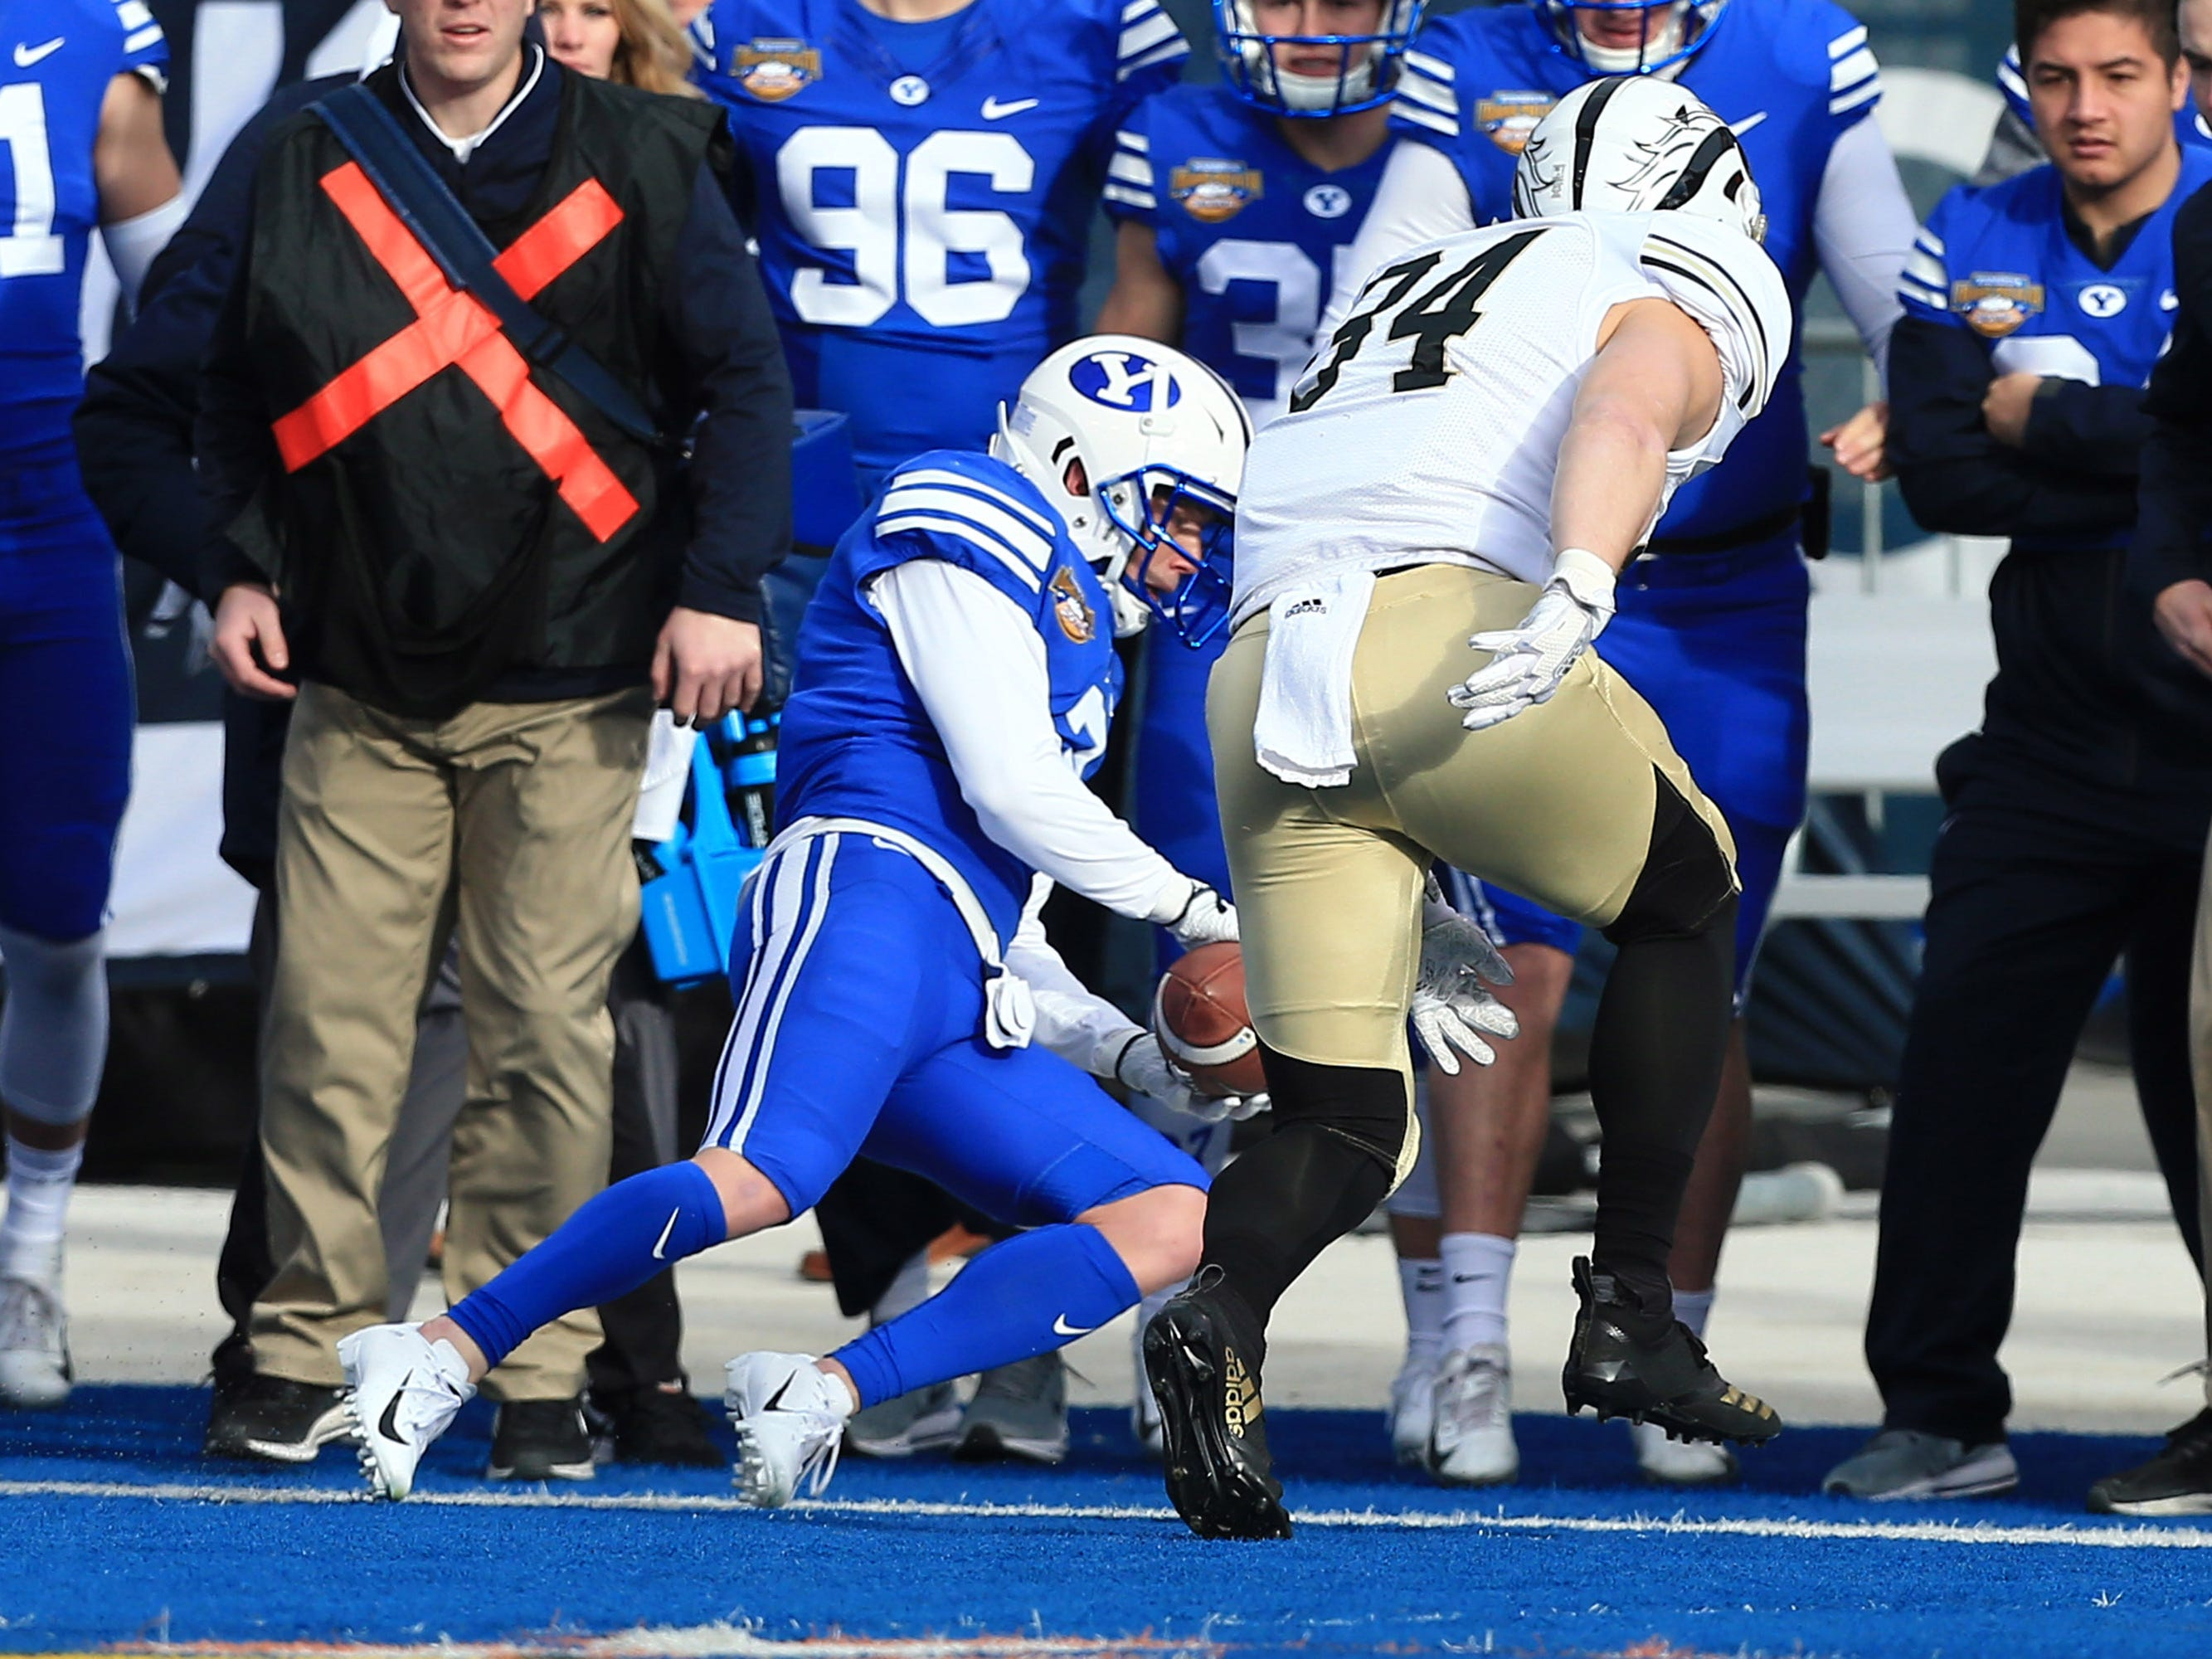 Dec 21, 2018; Boise, ID, United States; Brigham Young Cougars wide receiver Dylan Collie (3) catches a pass during the first half  of play versus the Western Michigan Broncos at the 2018 Potato Bowl at Albertsons Stadium.